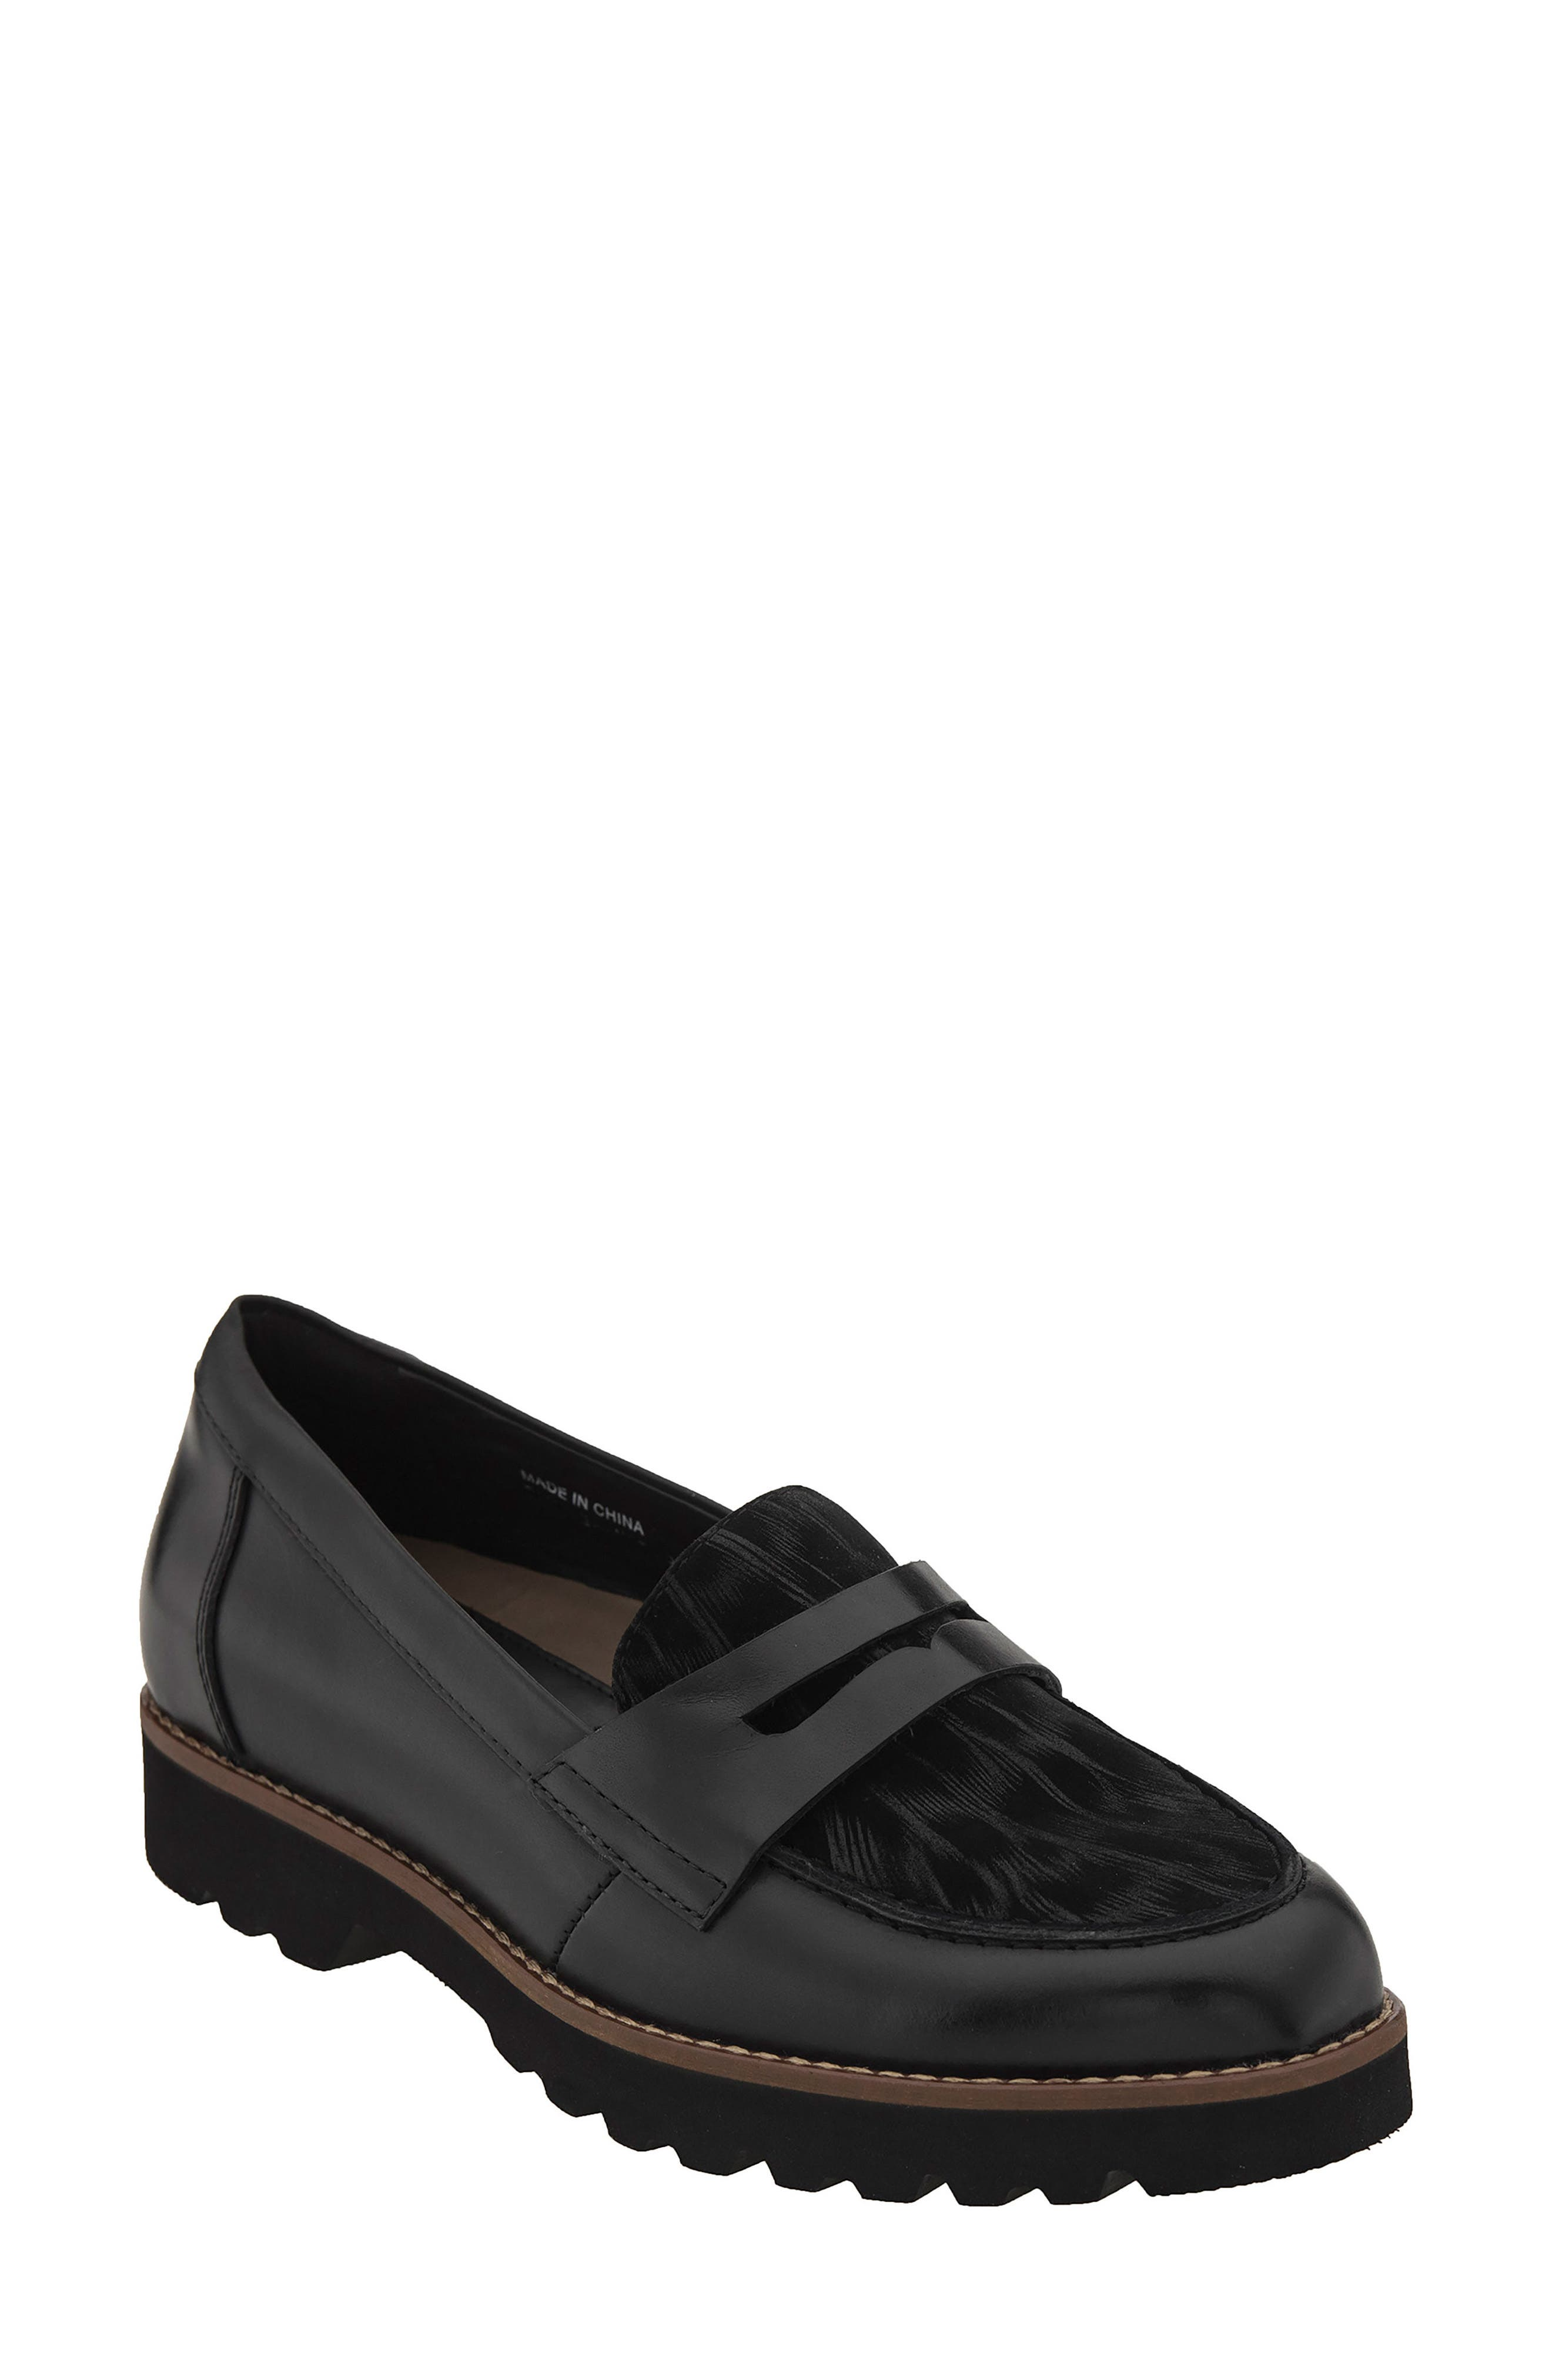 Earthies 'Braga' Loafer, Main, color, 002